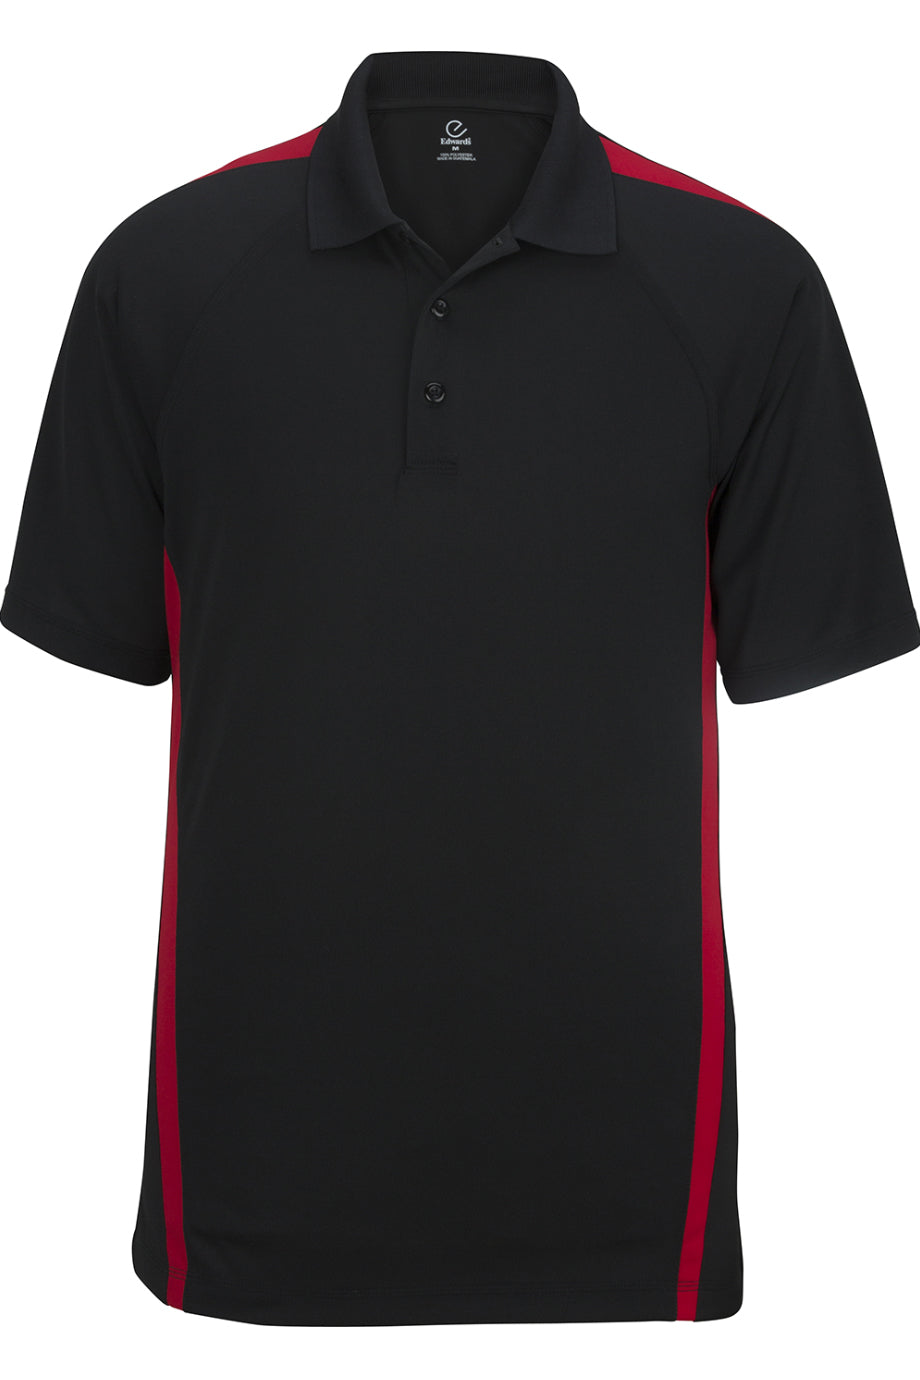 Black With Red Edwards Mens Snag-Proof Color Block Short Sleeve Polo